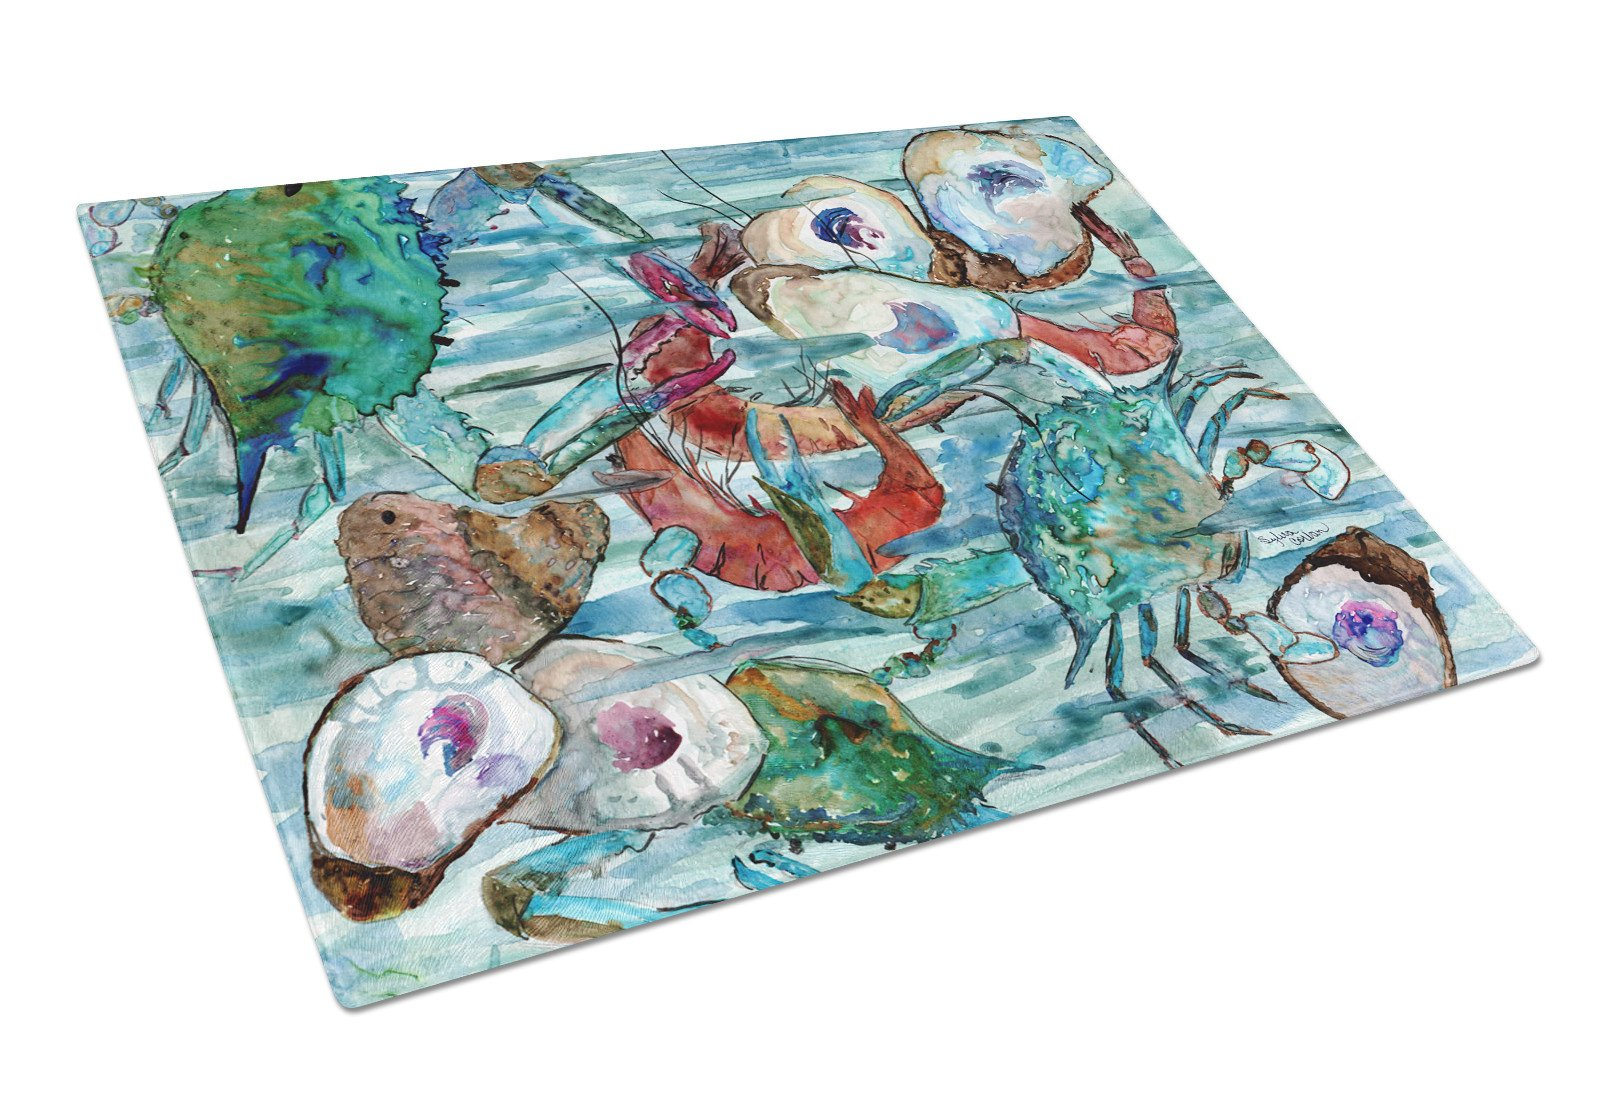 Watery Shrimp, Crabs and Oysters Glass Cutting Board Large 8964LCB by Caroline's Treasures